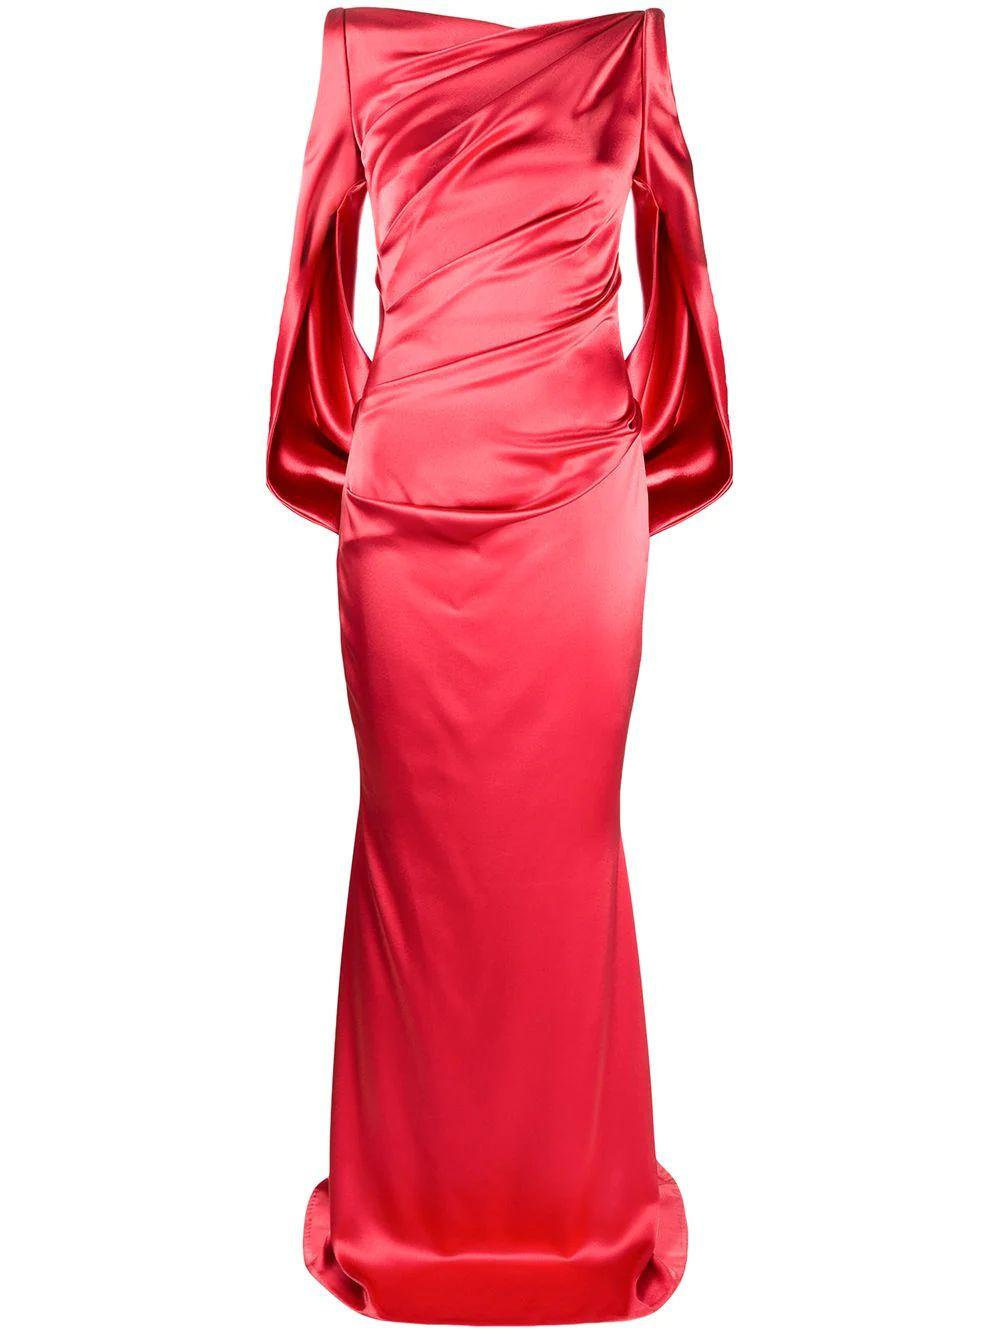 Ponce Evening Gown Item # PONCEAU5